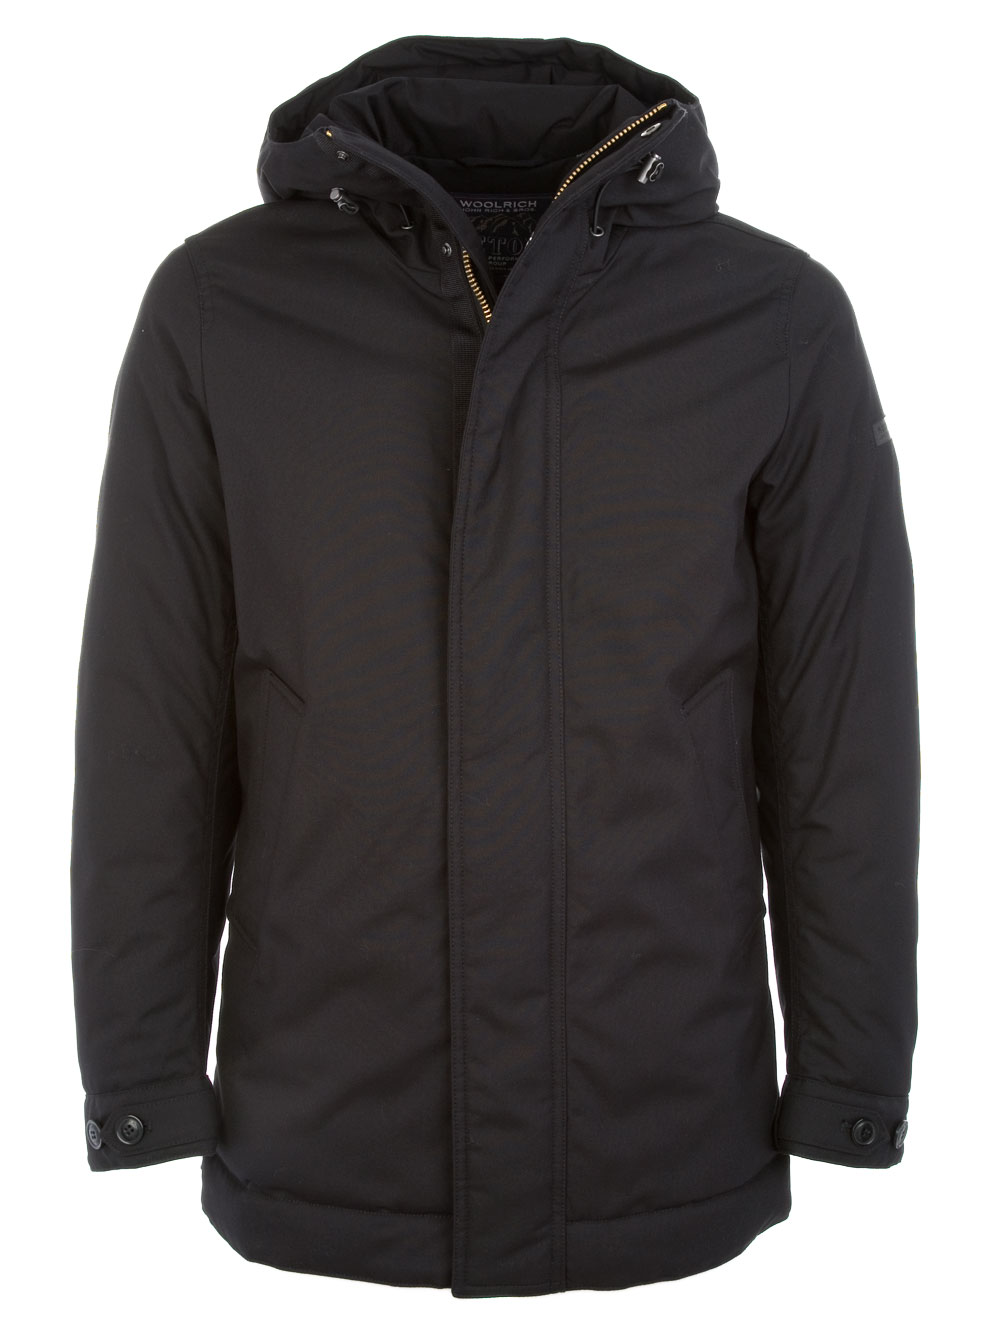 Picture of WOOLRICH | Teton Rudder Padded Jacket